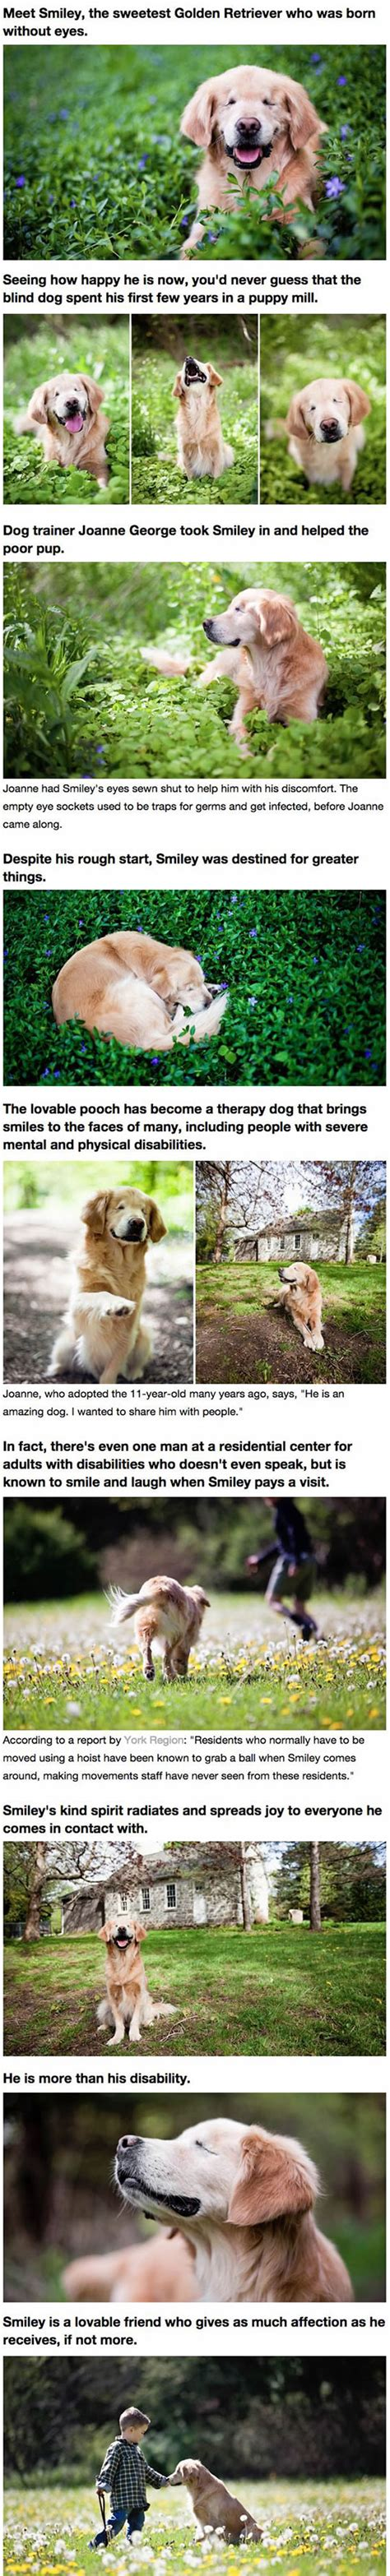 golden retriever stories golden retriever born without brings to humans with disabilities barnorama